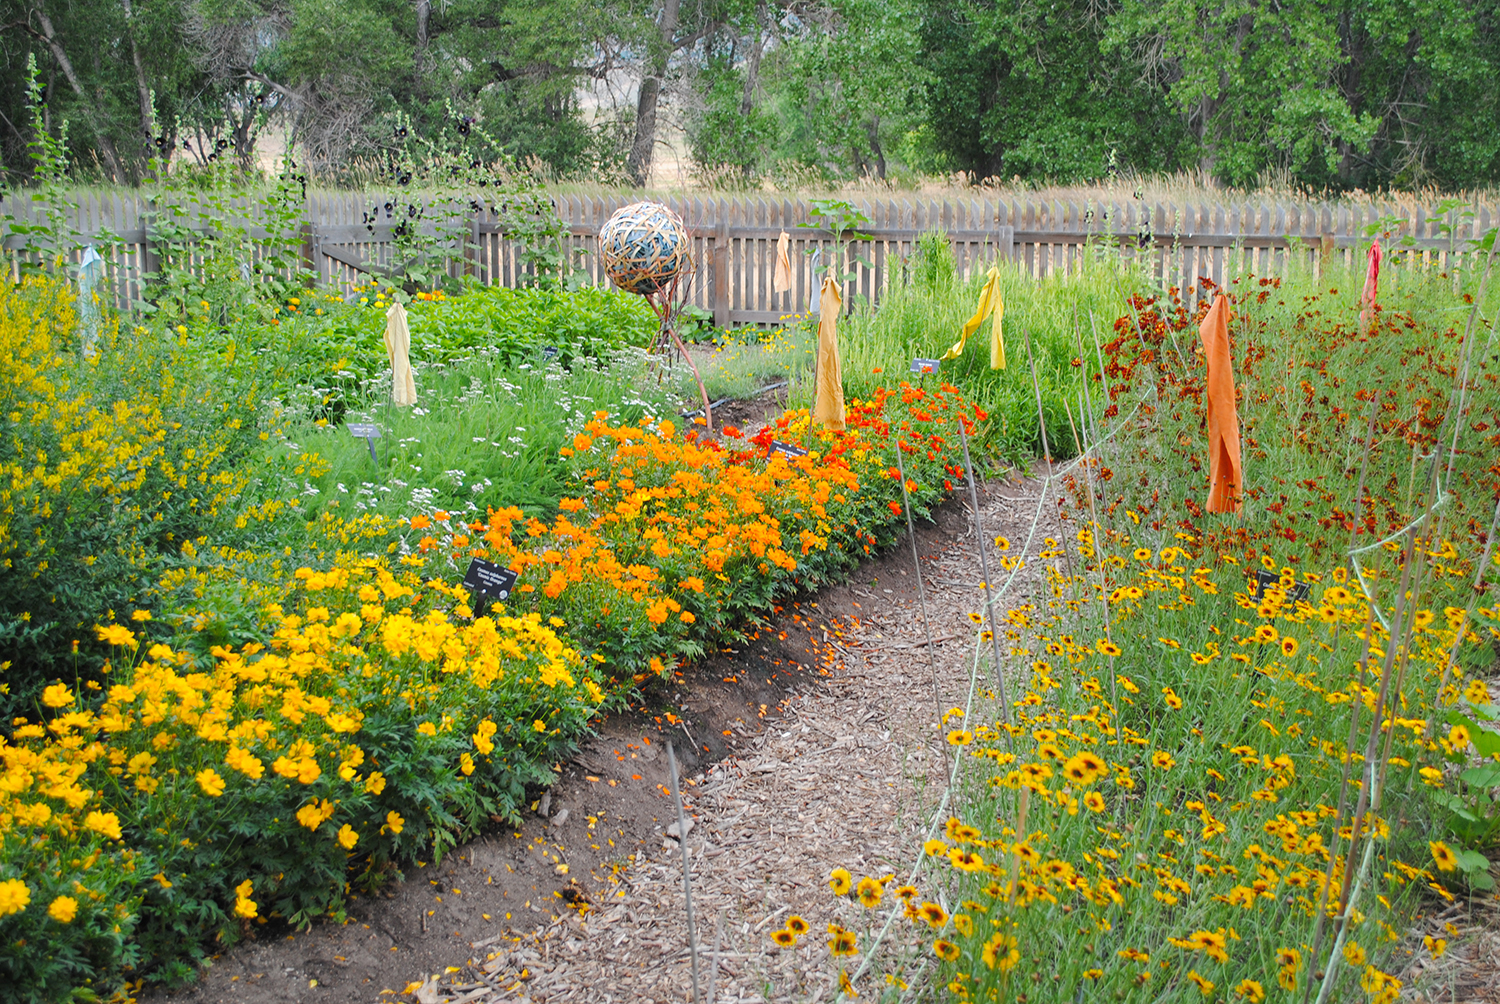 The Chatfield Farms dye garden featured a variety of common garden plants that can be used to color-change clothes.